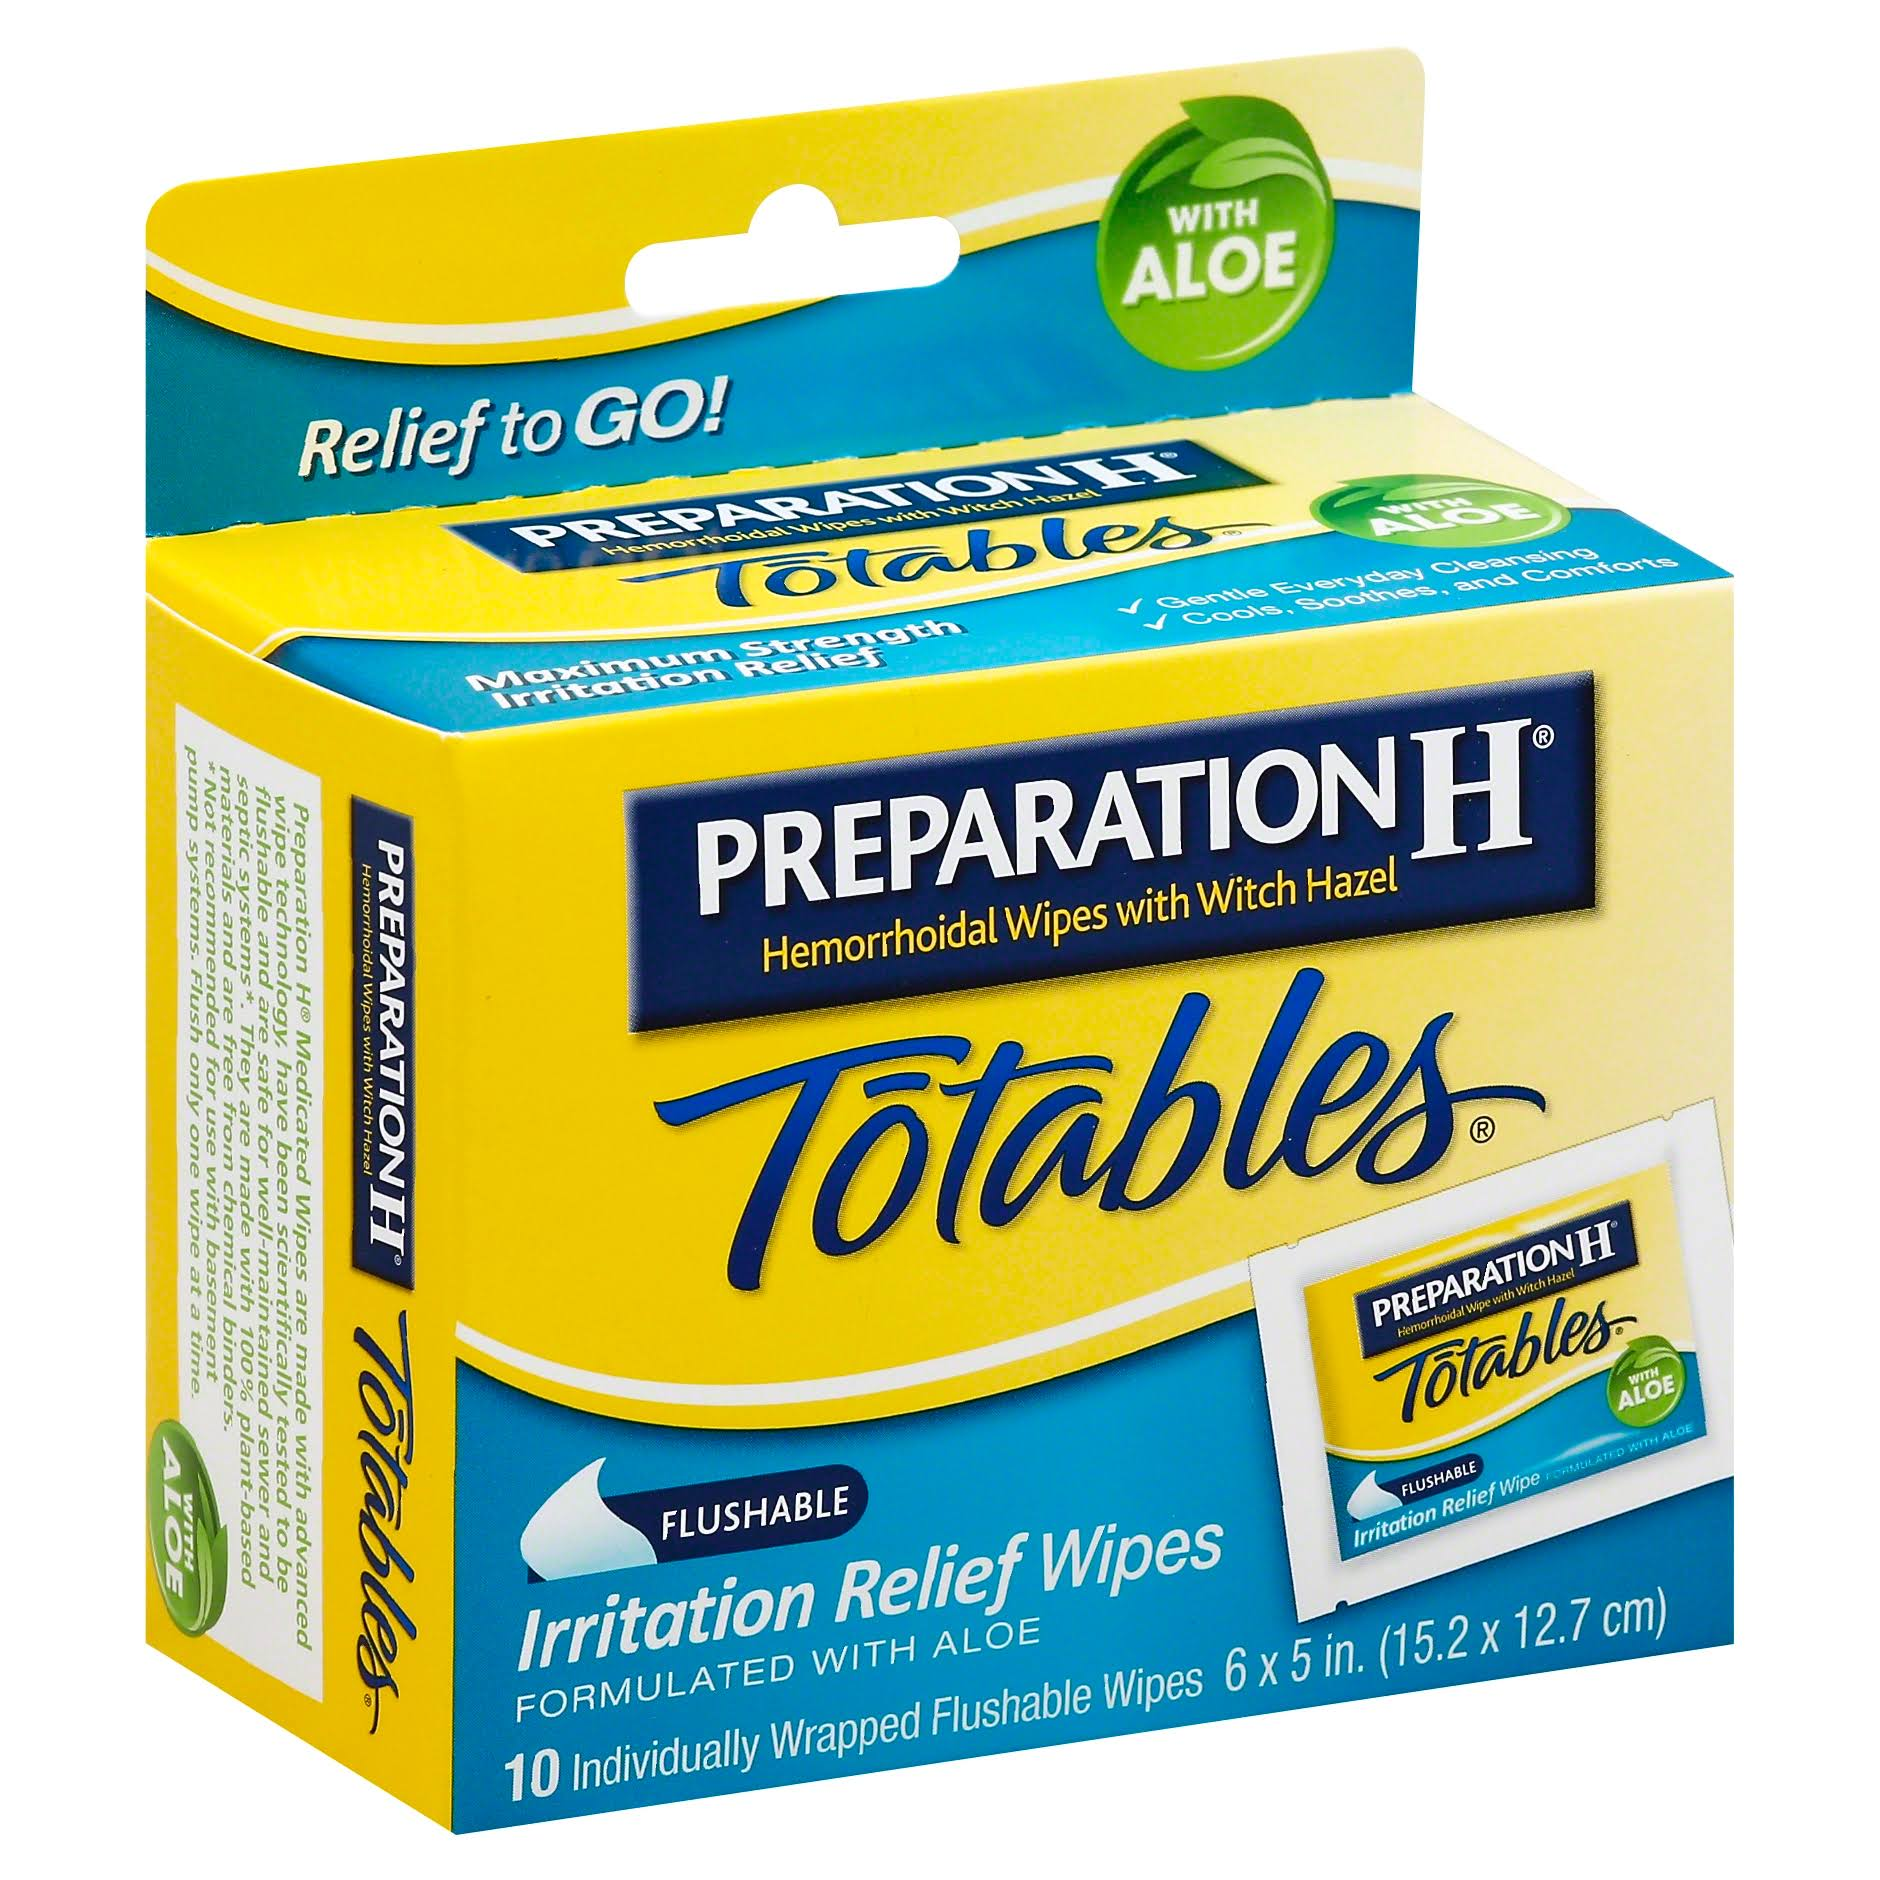 Preparation H Totables Irritation Relief Wipes with Aloe - x10